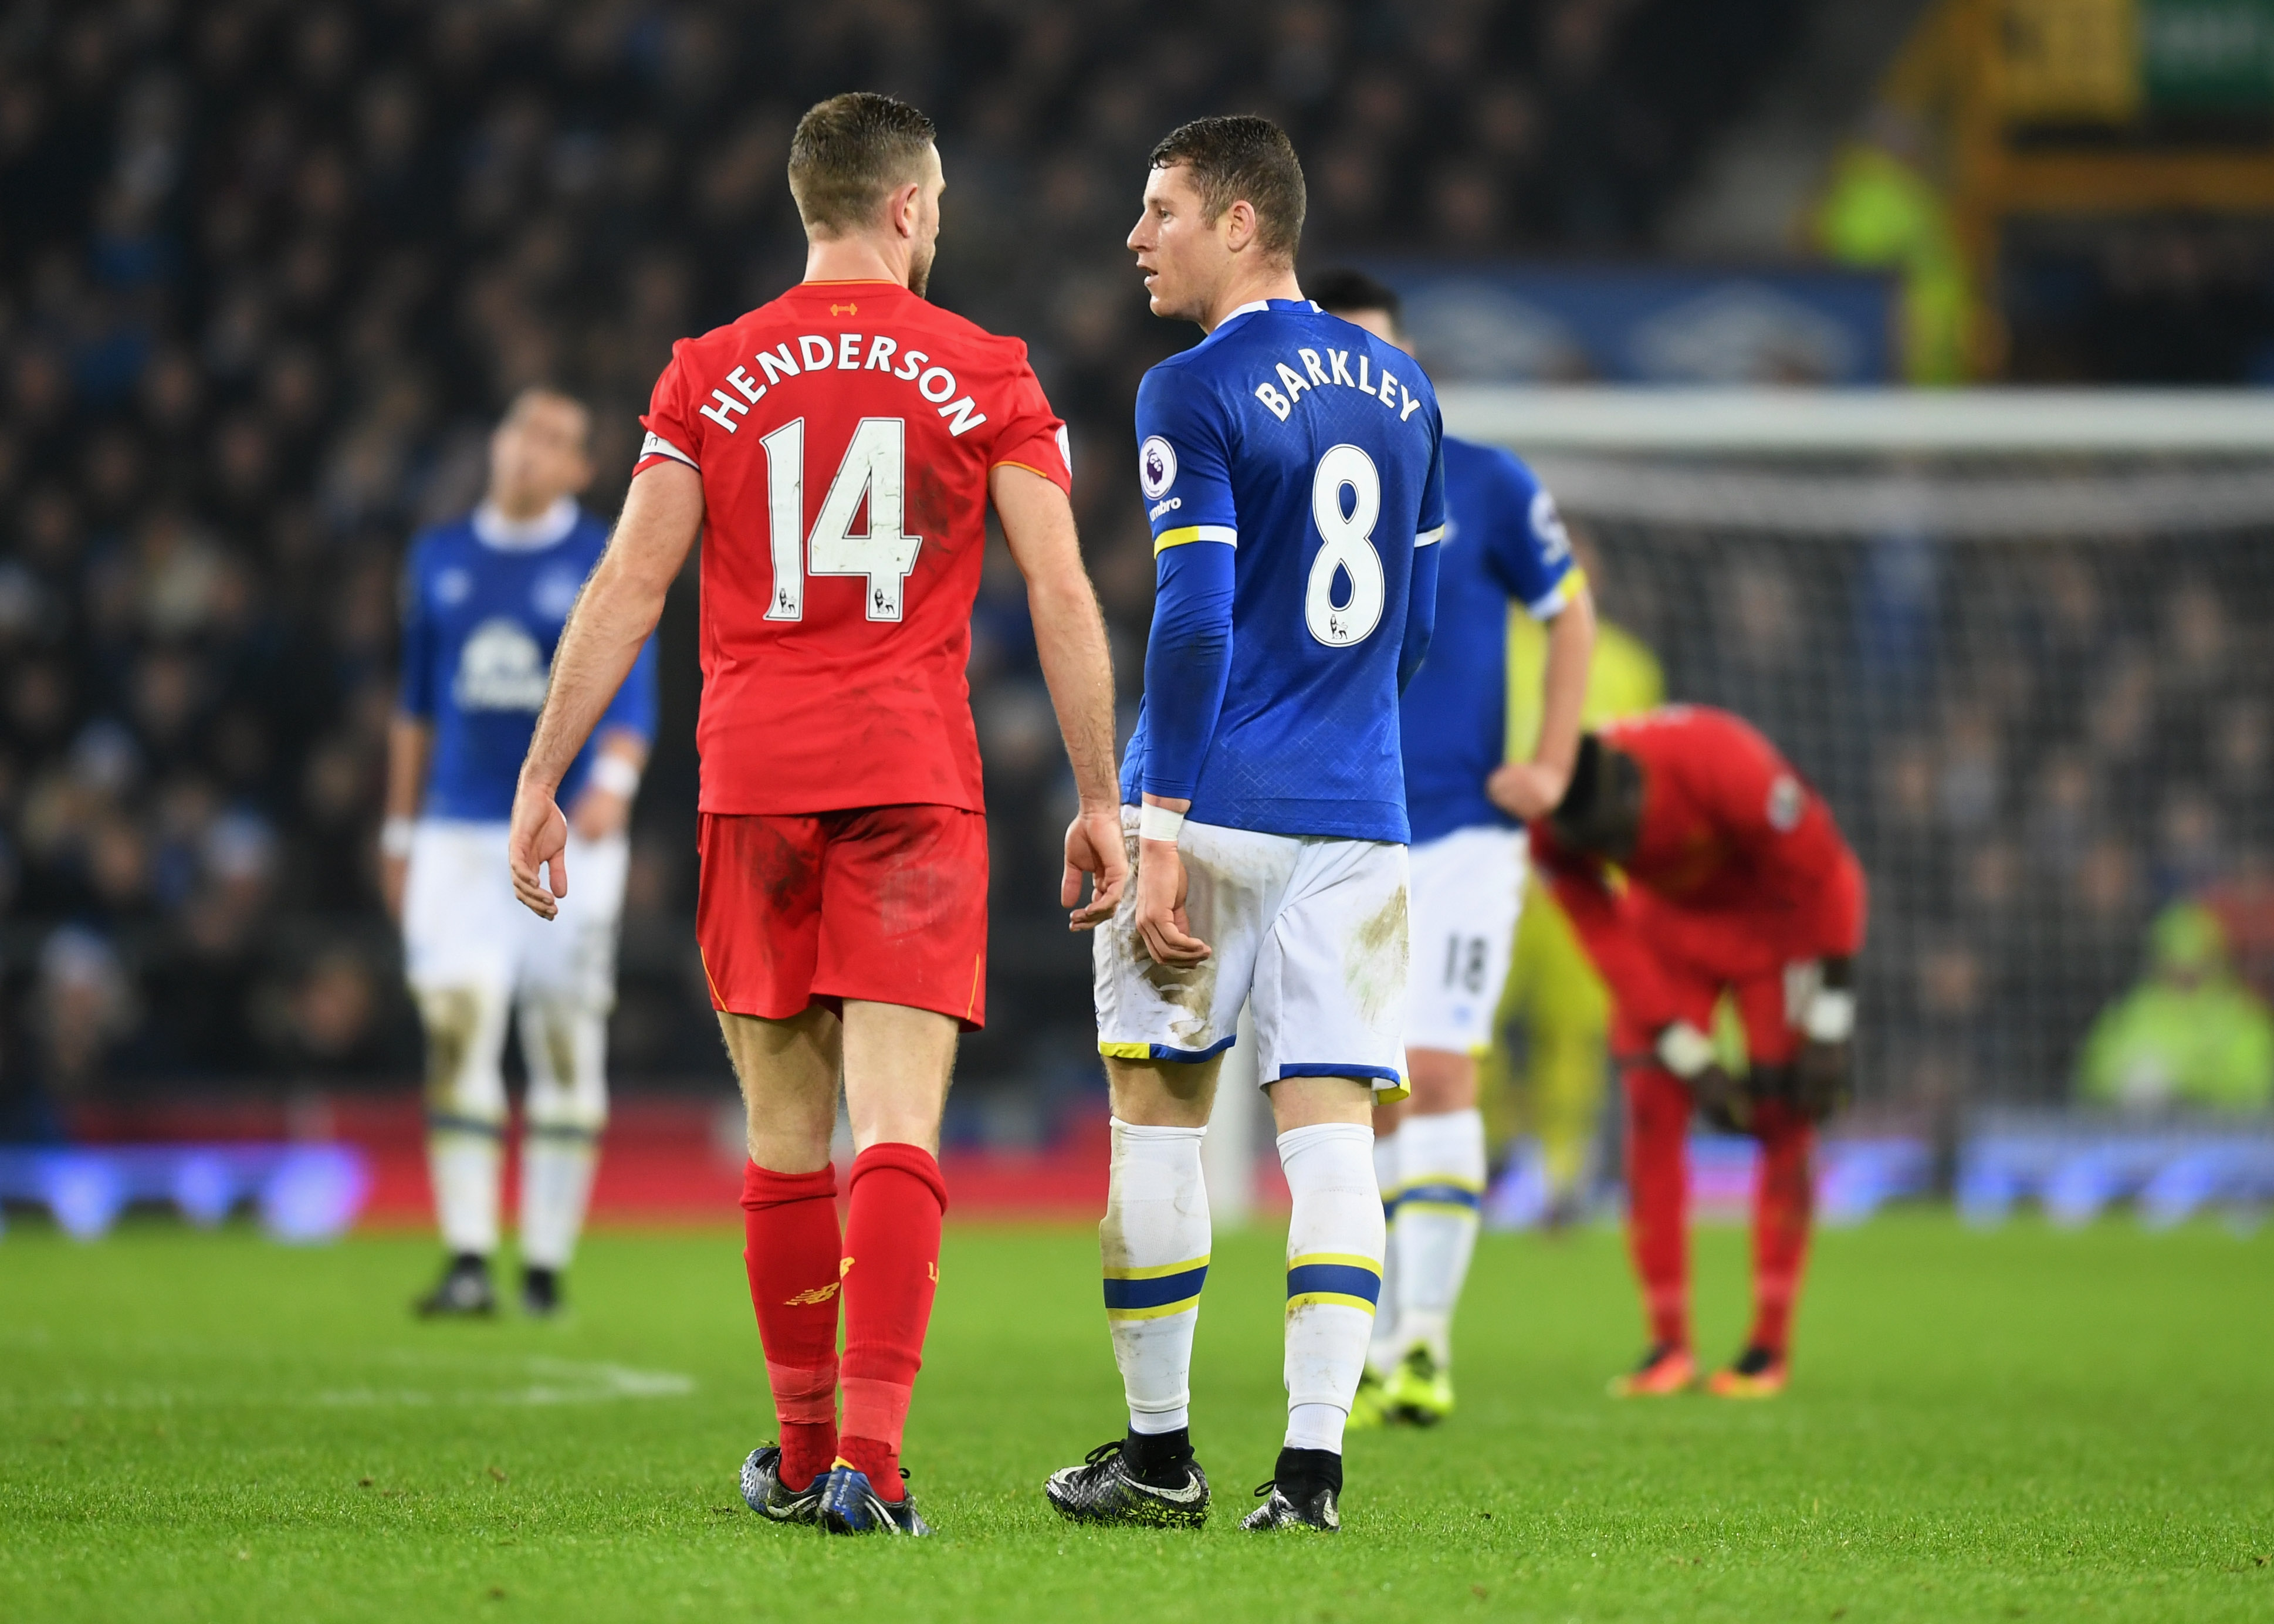 Liverpool v Everton TV channel, kick-off time, odds and Merseyside derby head-to-head